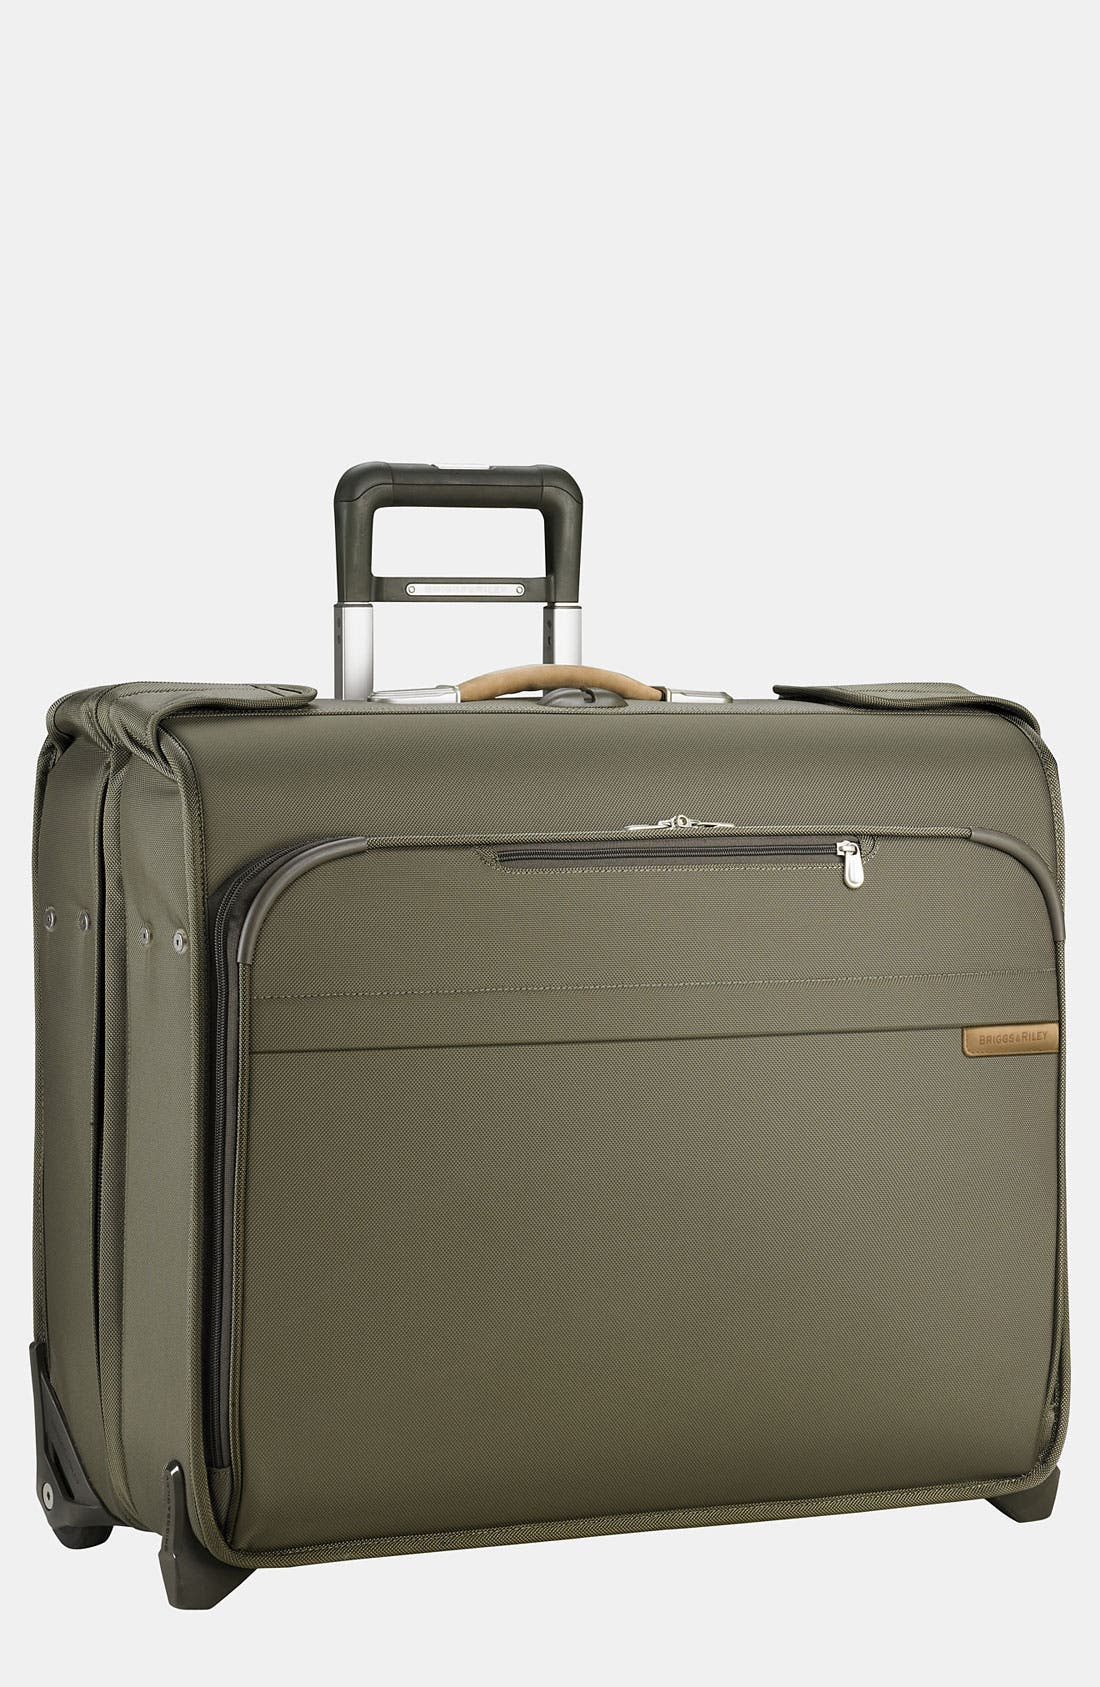 Alternate Image 1 Selected - Briggs & Riley 'Baseline - Deluxe' Rolling Garment Bag